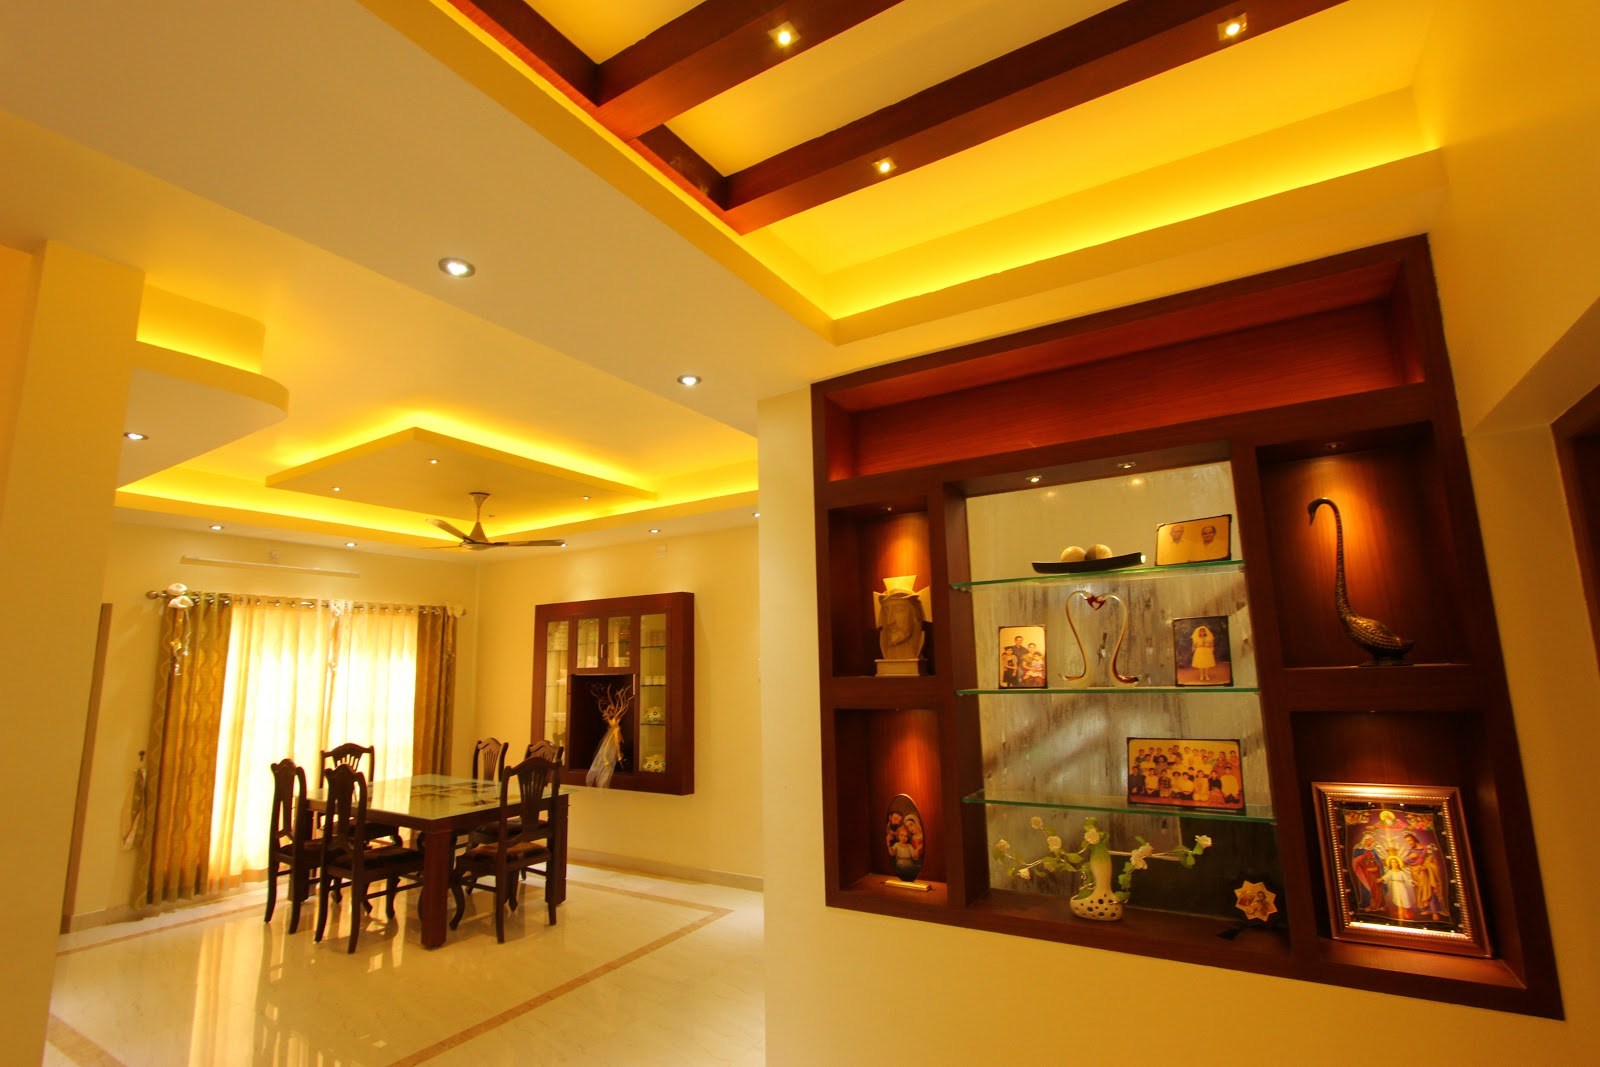 Shilpakala interiors award winning home interior design for House design company